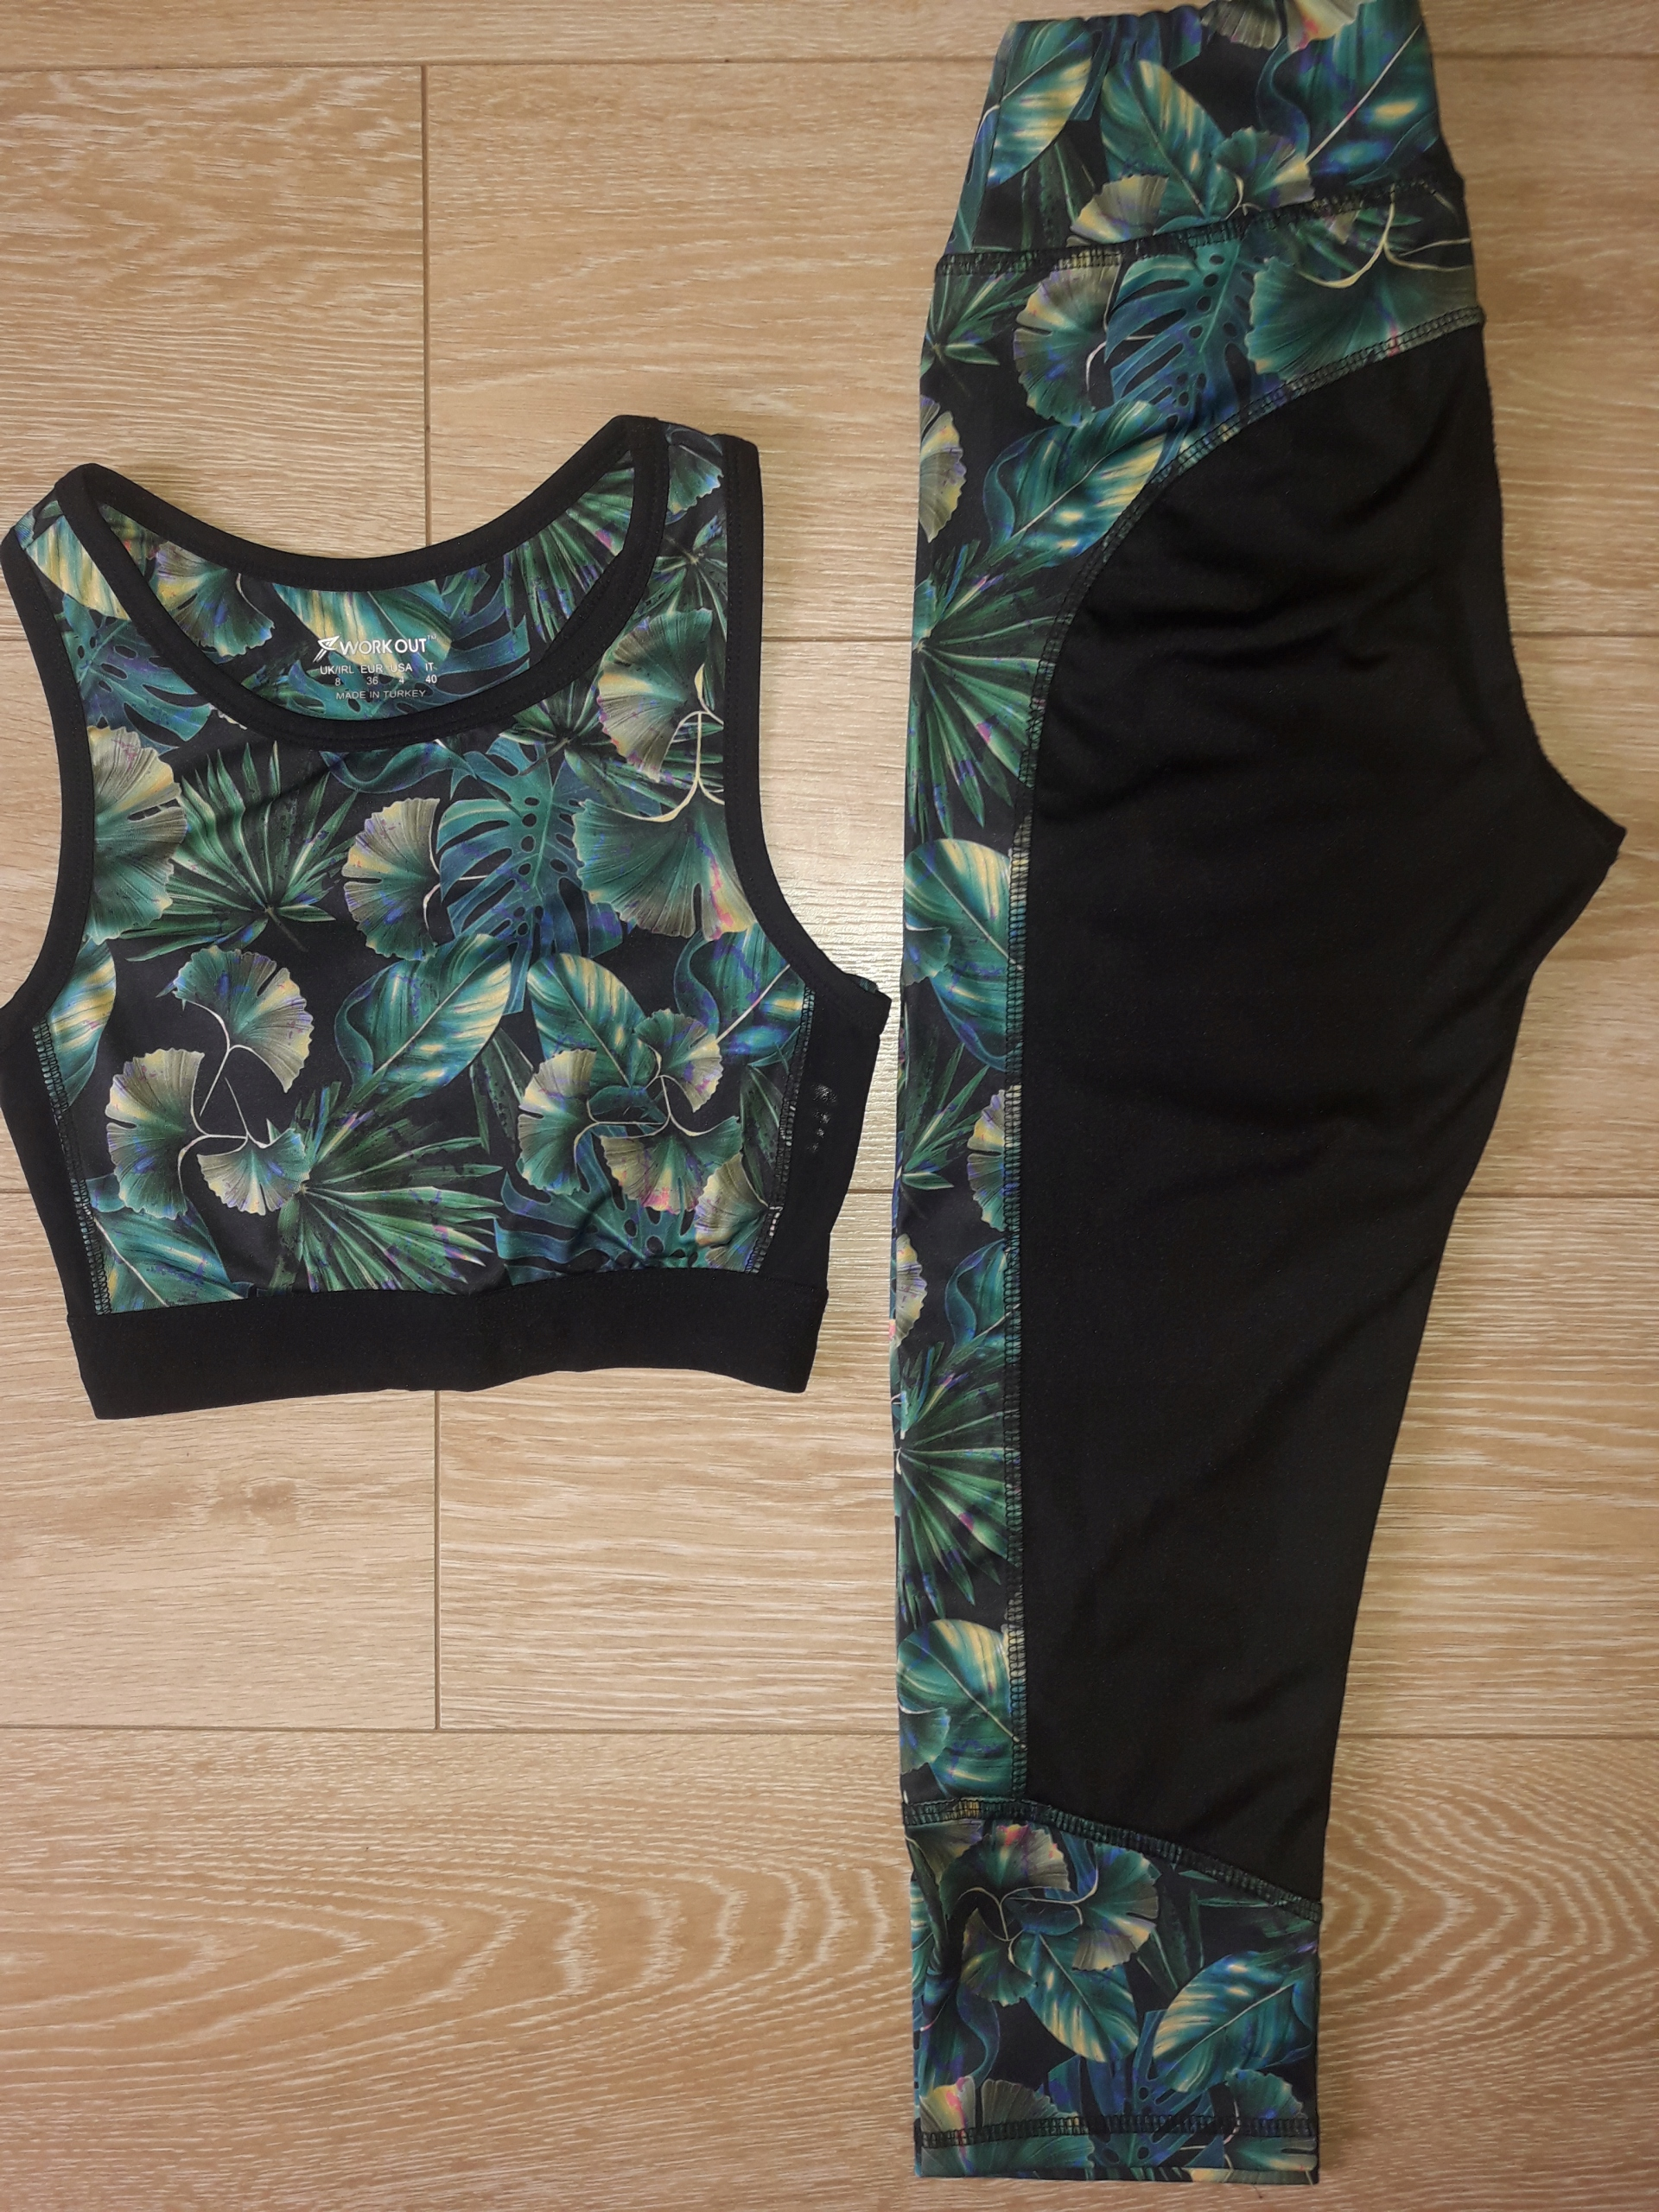 KOMPLET SPORTOWY LEGGINSY I TOP WORK OUT S/XS